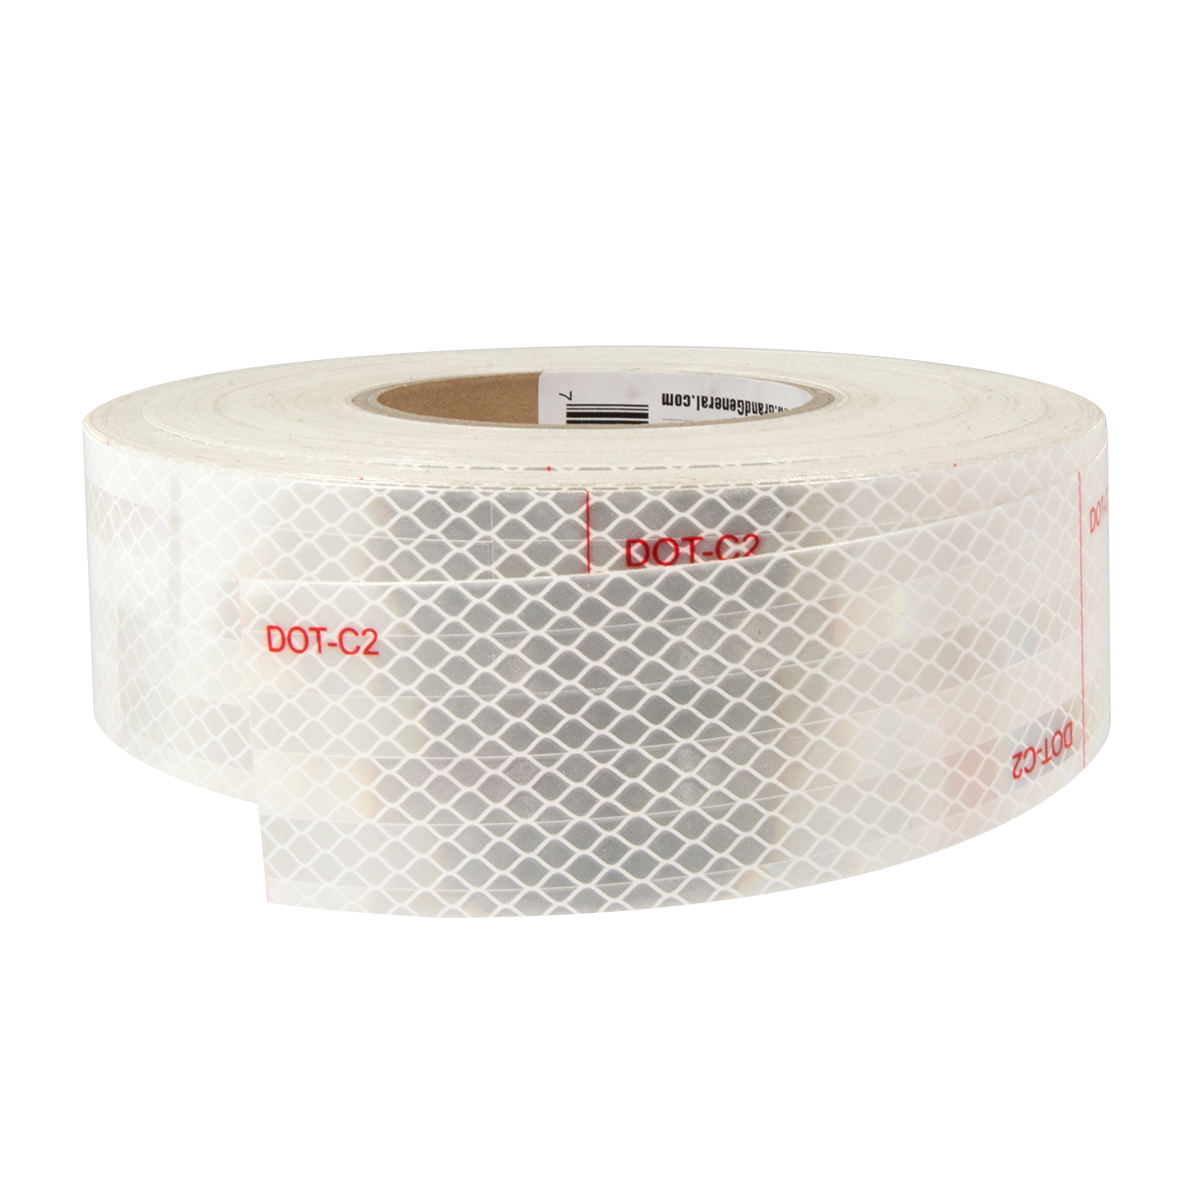 92298 Premium Hi Viz DOT-C2 Conspicuity Tape in White 150′ Roll